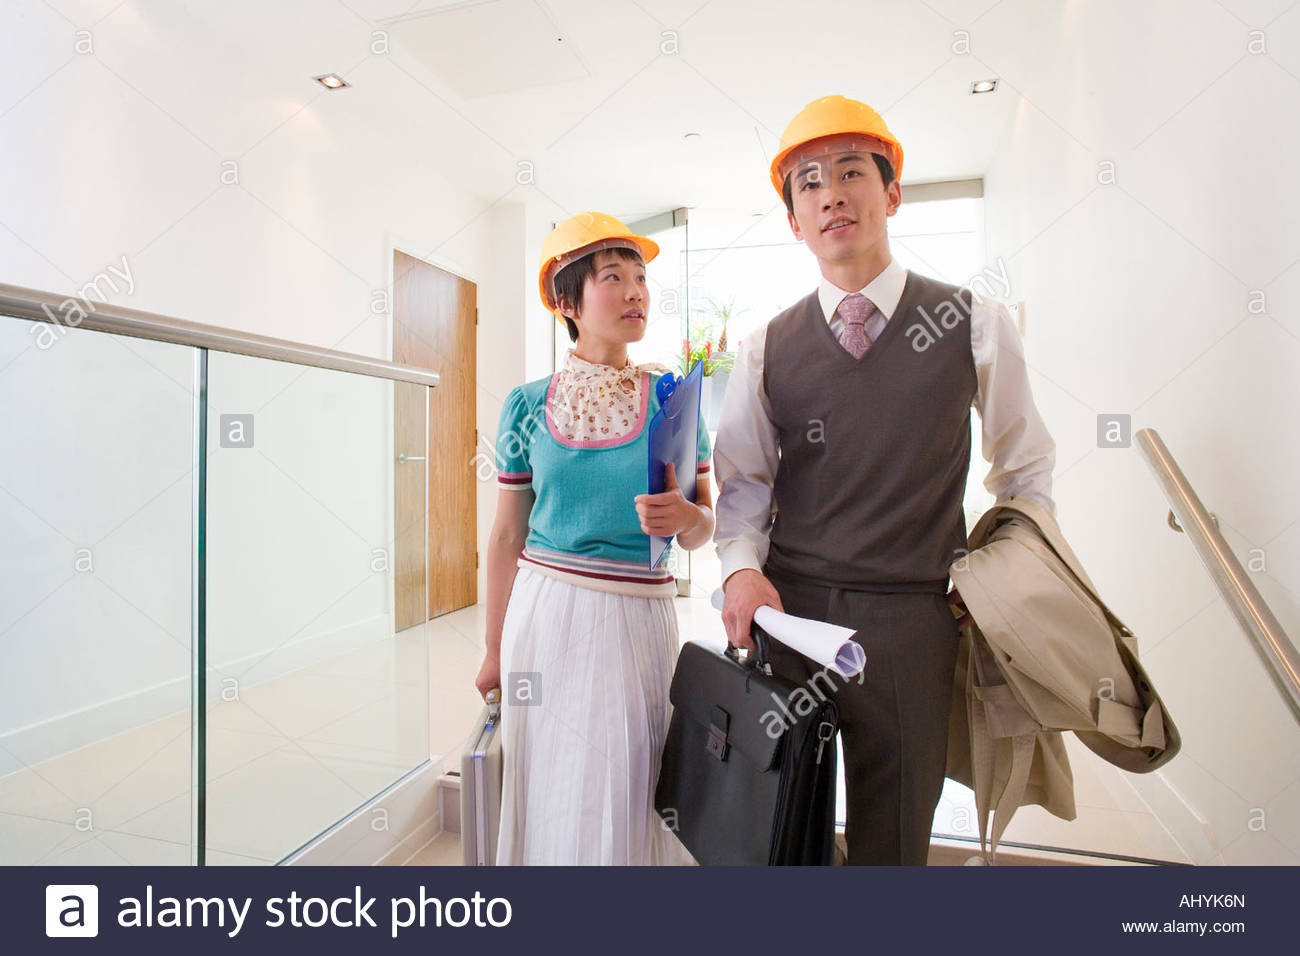 20'S Japanese businessman and woman wearing hard hats walking through the office, - Stock Image